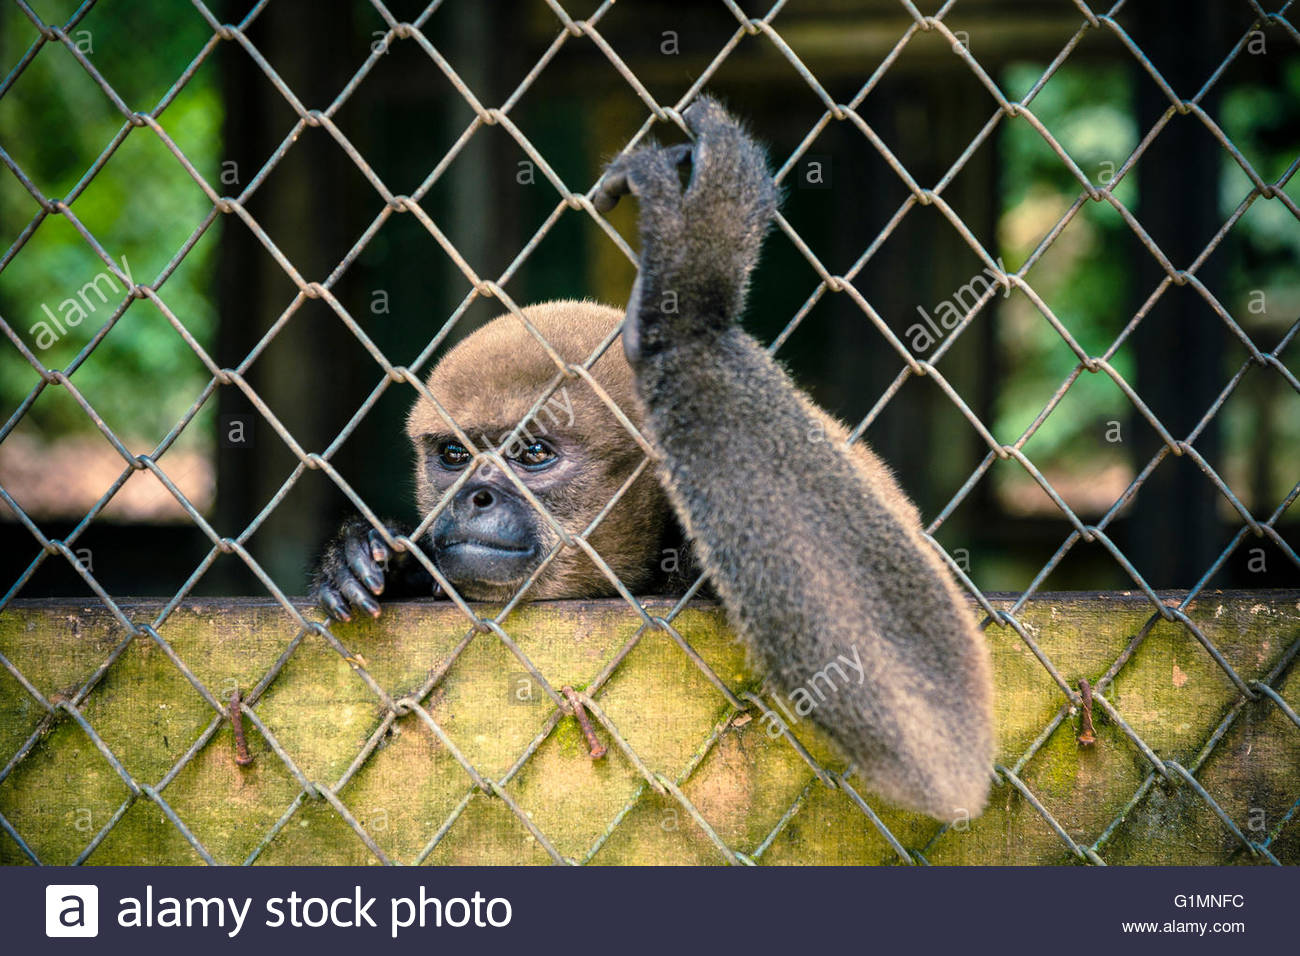 Brown Wolly Monkey (Lagothrix lagotricha) in captivity at Quistacocha, Iquitos, Loreto, Peru Stock Photo